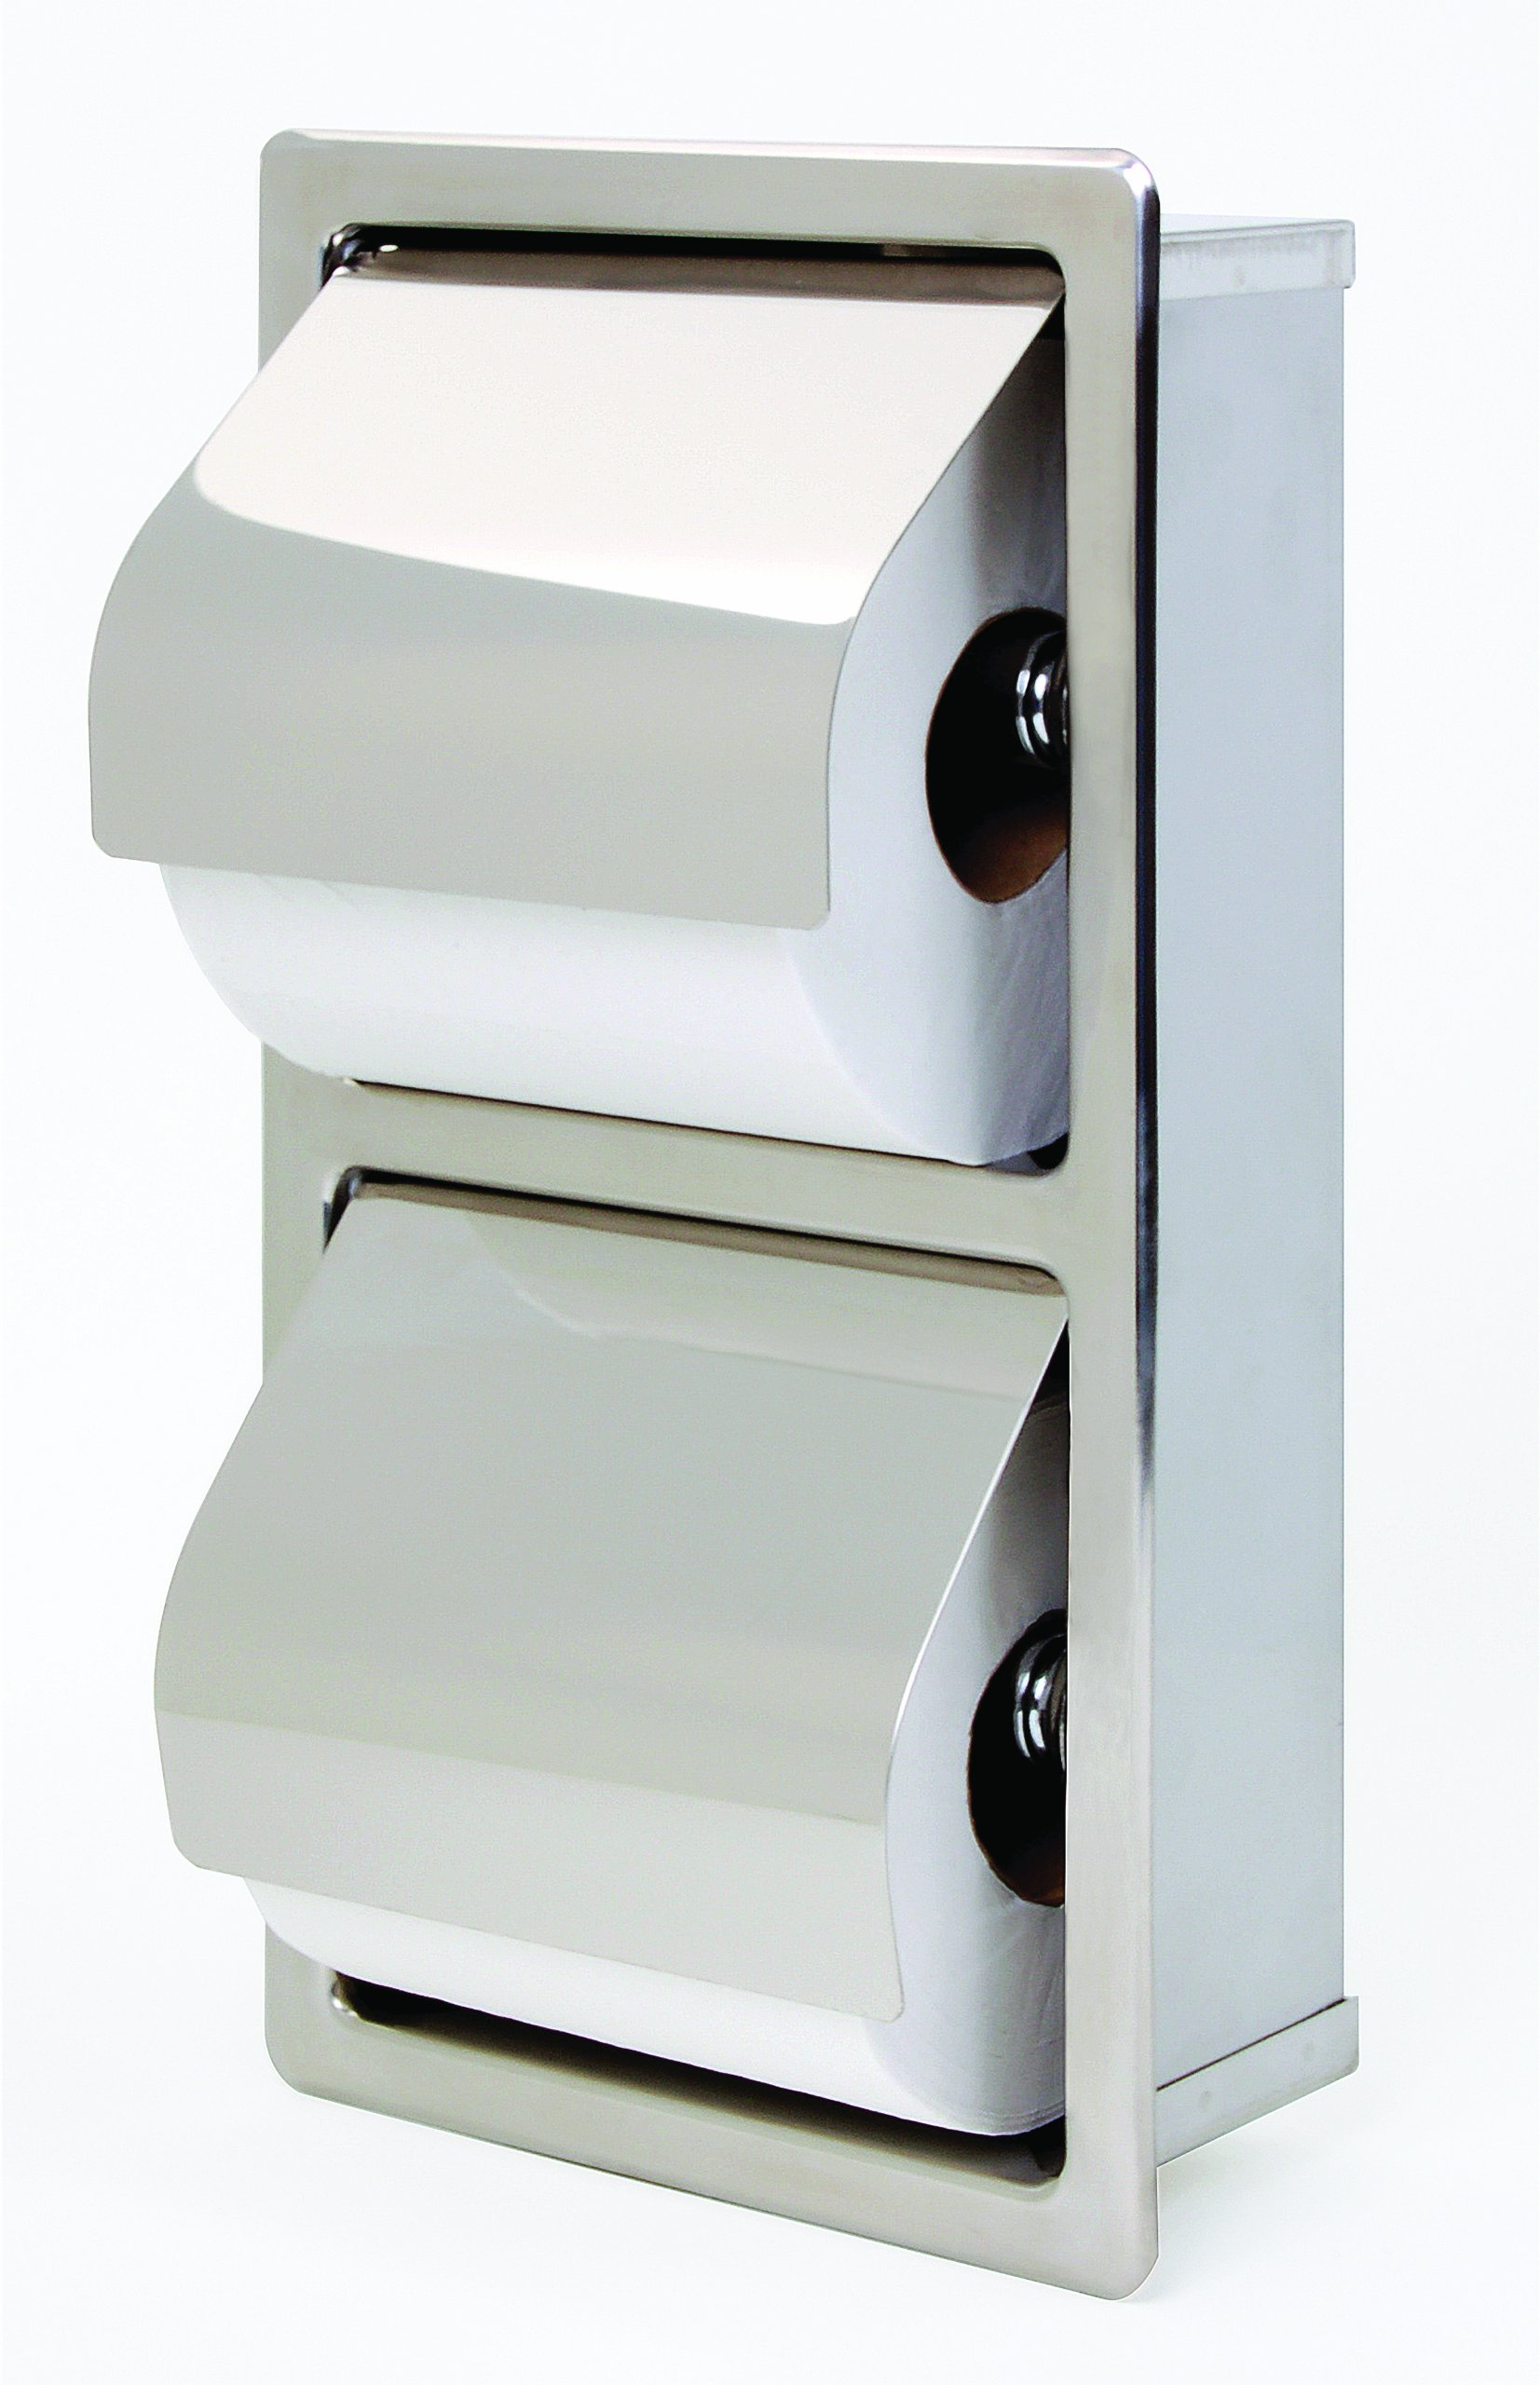 Bradley 5127-000000 Stainless Steel Recessed Mounted Hinged Hood Stacking Rolls Toilet Tissue Dispenser, 6-1/2'' Width x 12-1/4'' Height x 3'' Depth by Bradley